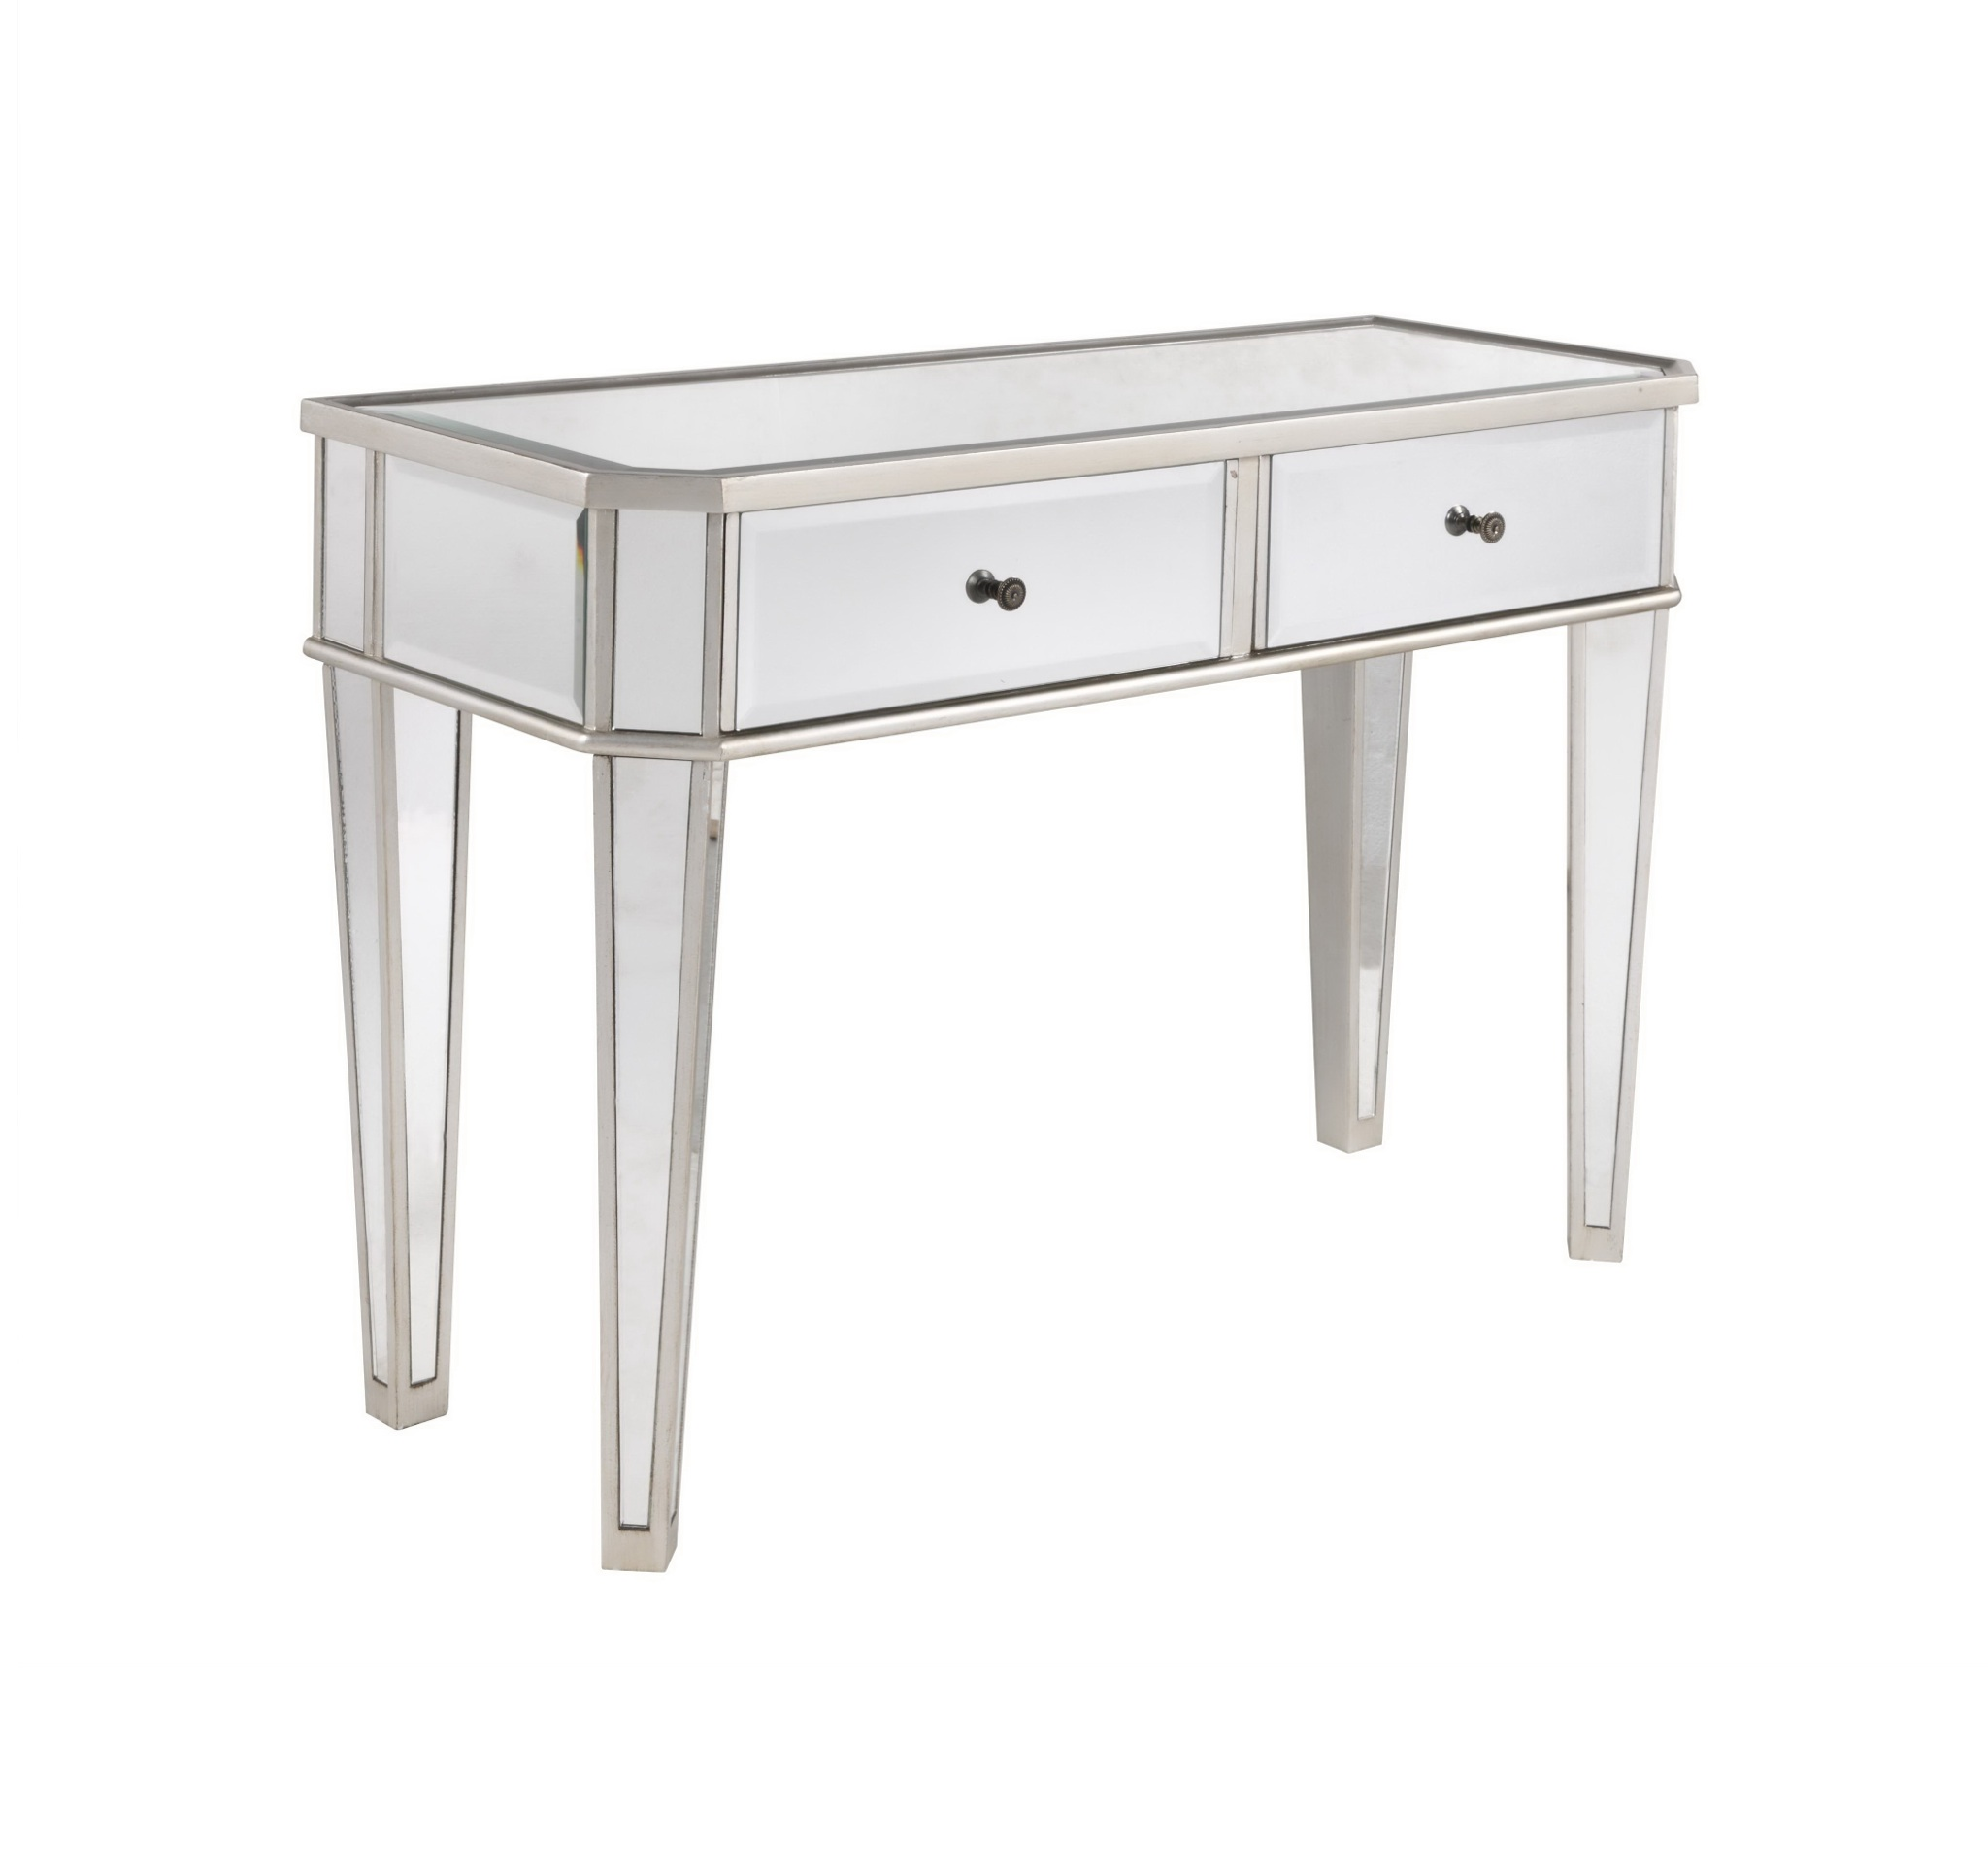 the outrageous cool mirrored nightstand from target ideas hotxpress captivating drawers shine coffee tables gold pedestal table accent mirror nightstands bedside ikea night stands